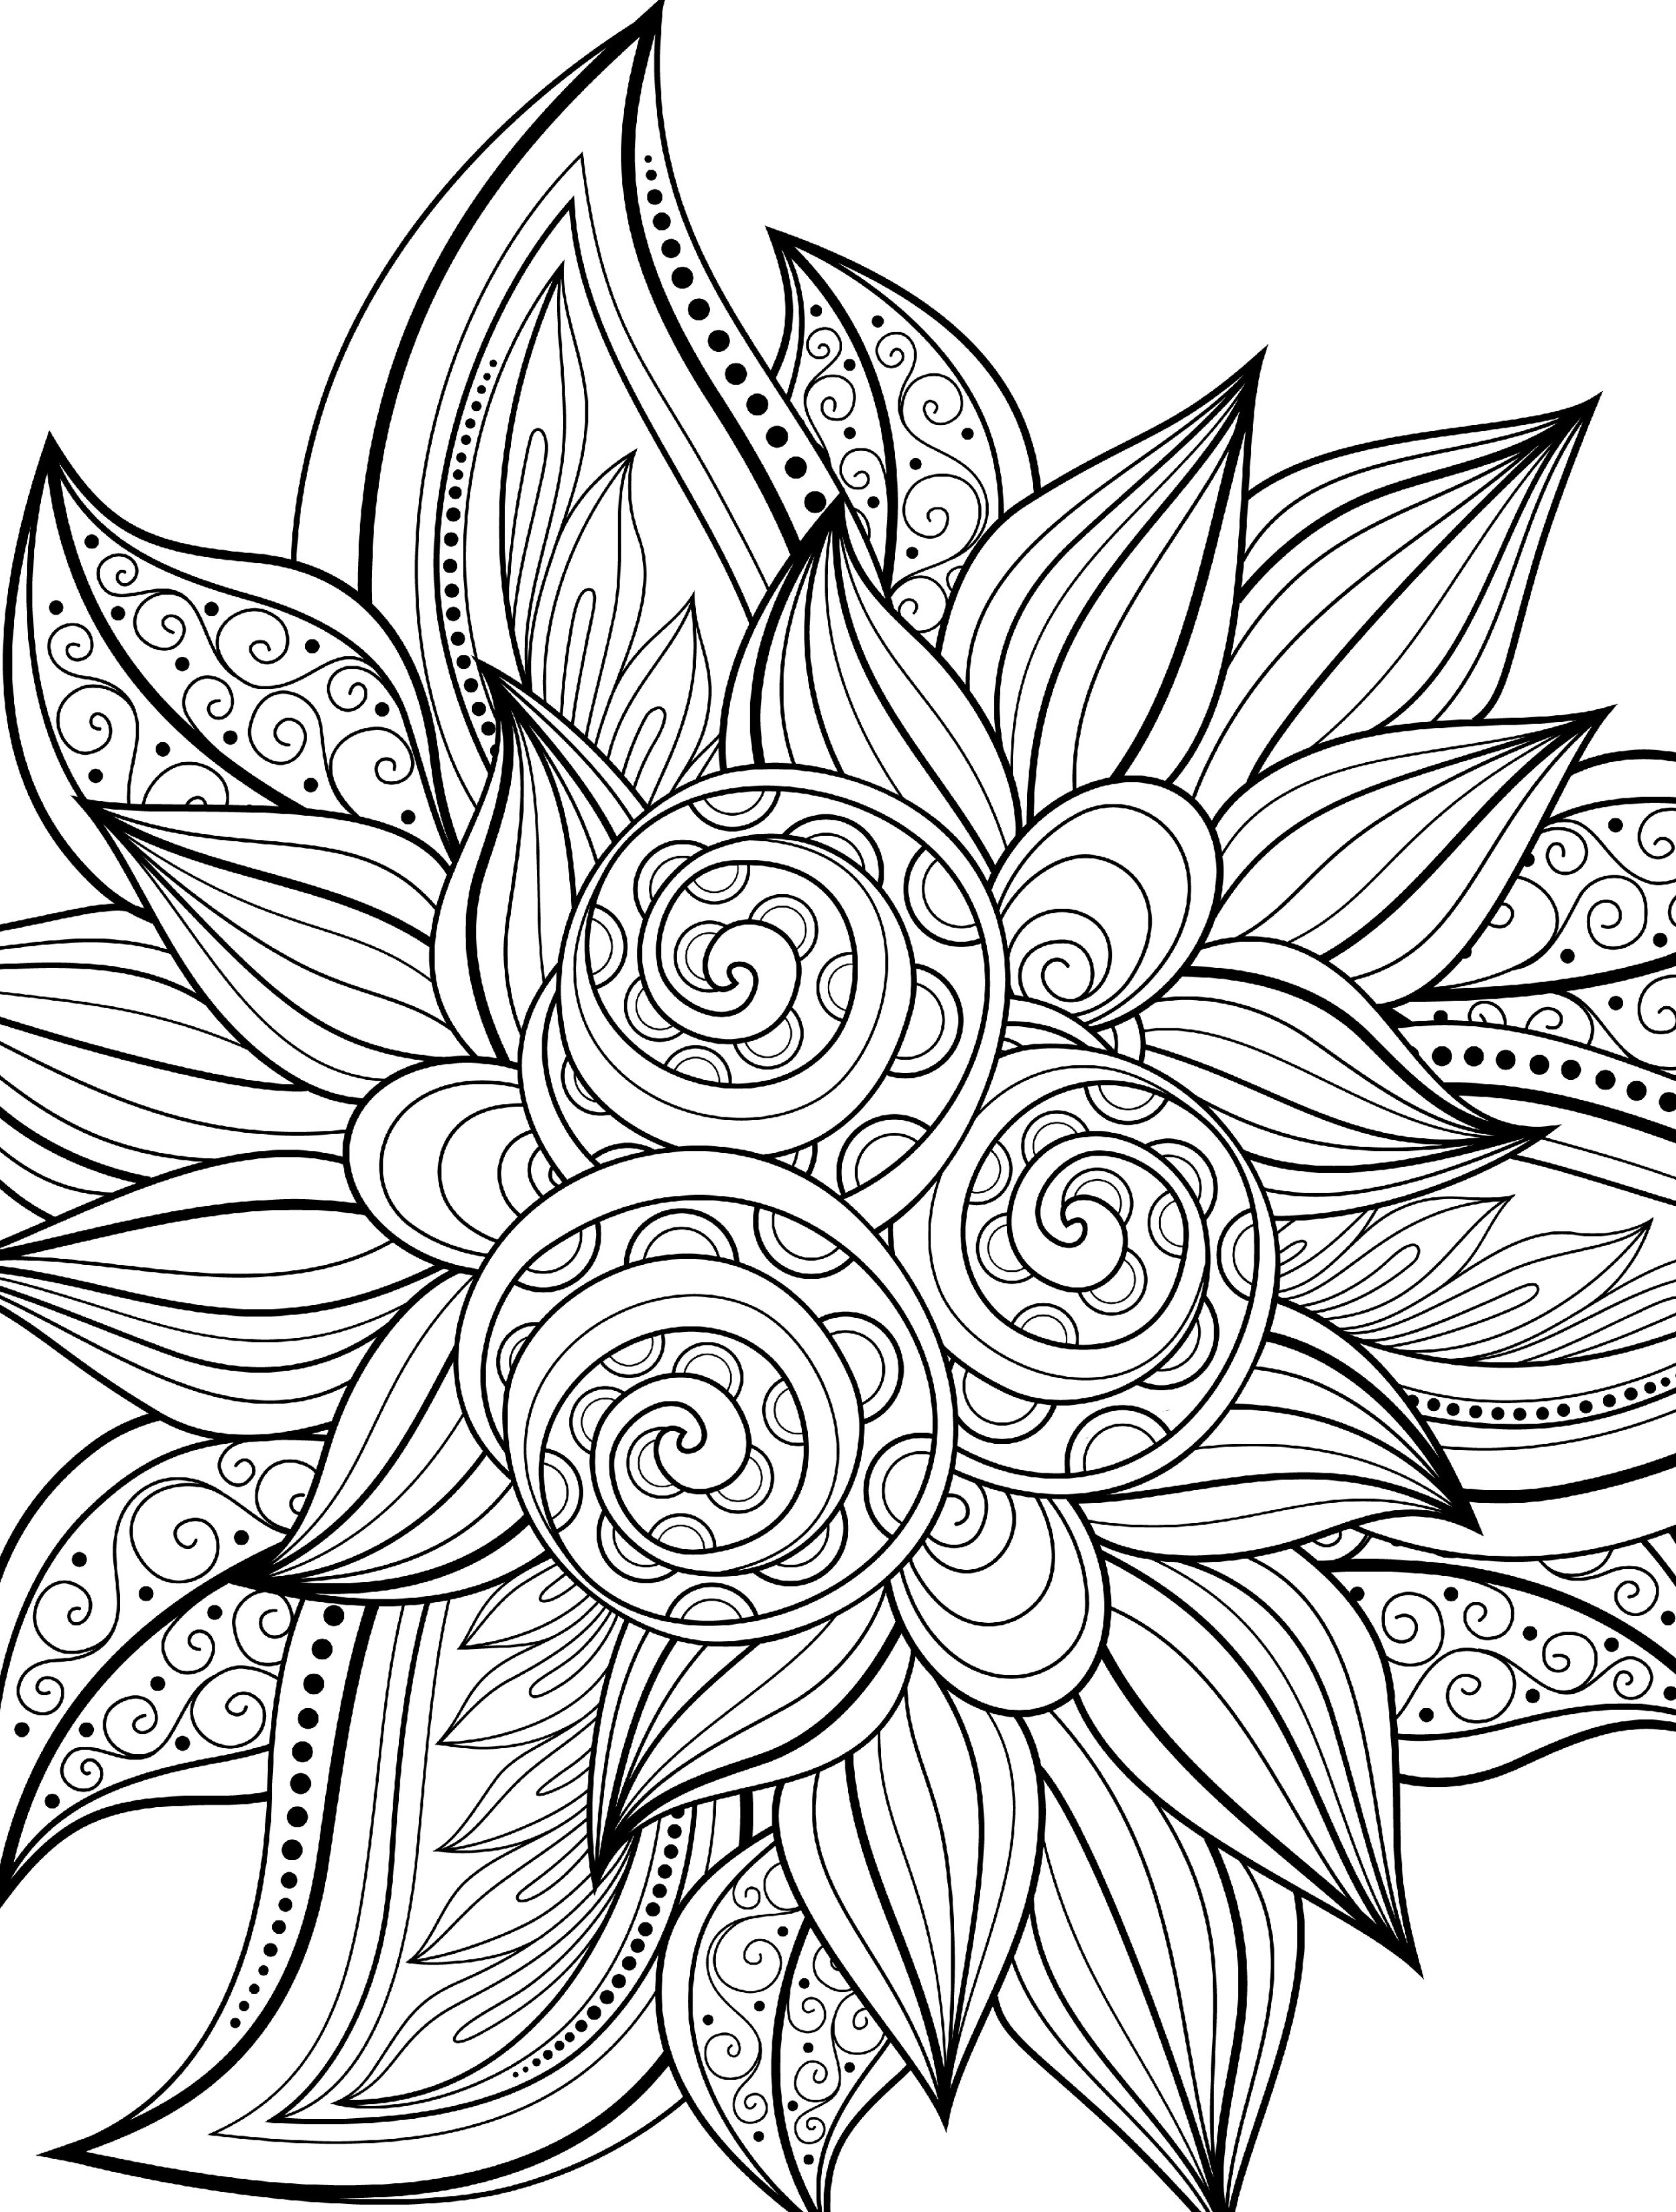 2500x3300 Poinsettia Coloring Pages Free Adult Coloring Within Christmas